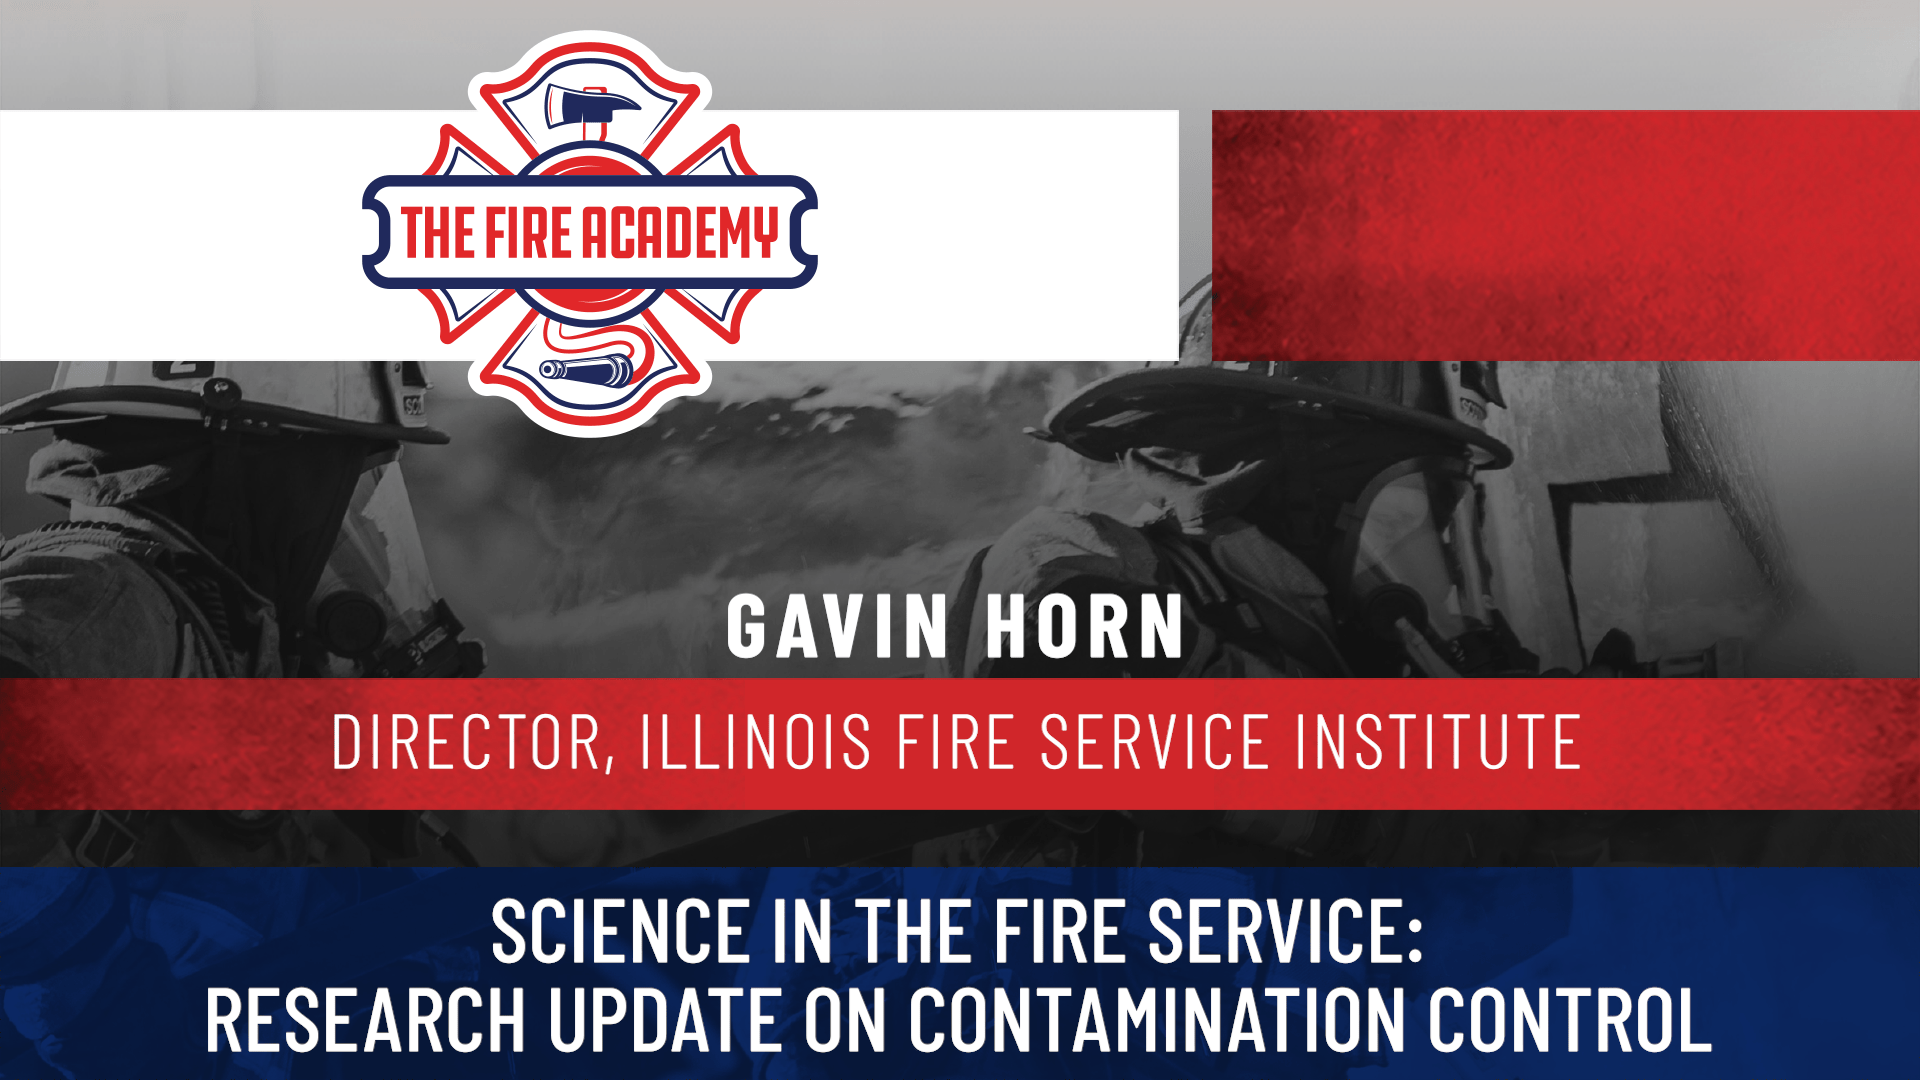 Science in the Fire Service: Research Update on Contamination Control